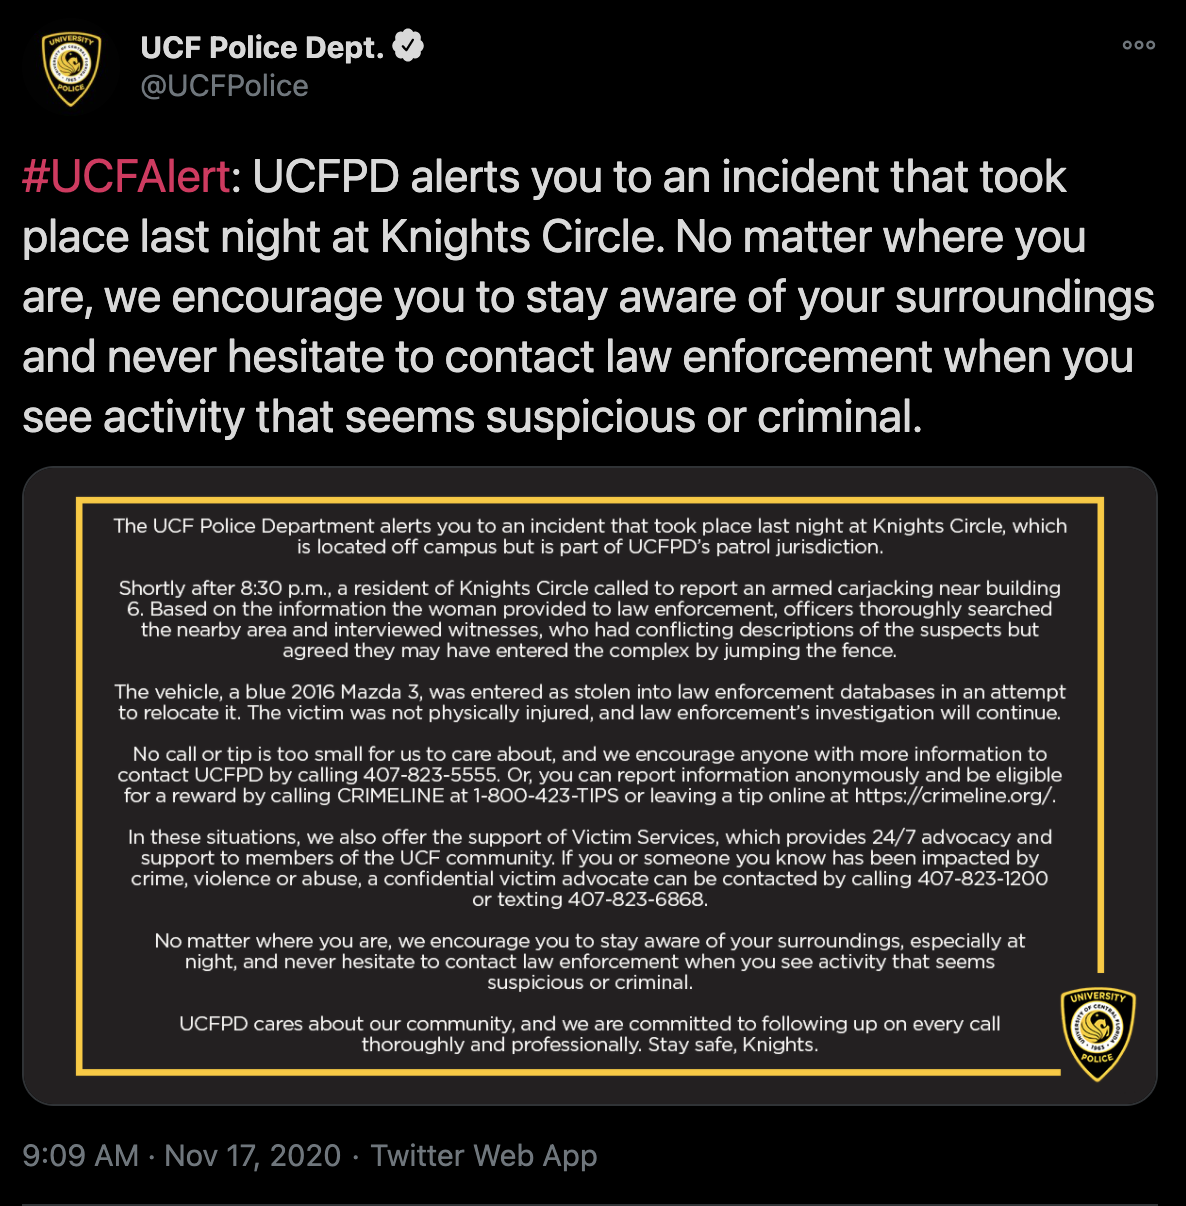 UCFPD responds to an armed carjacking incident Monday night at Knights Circle